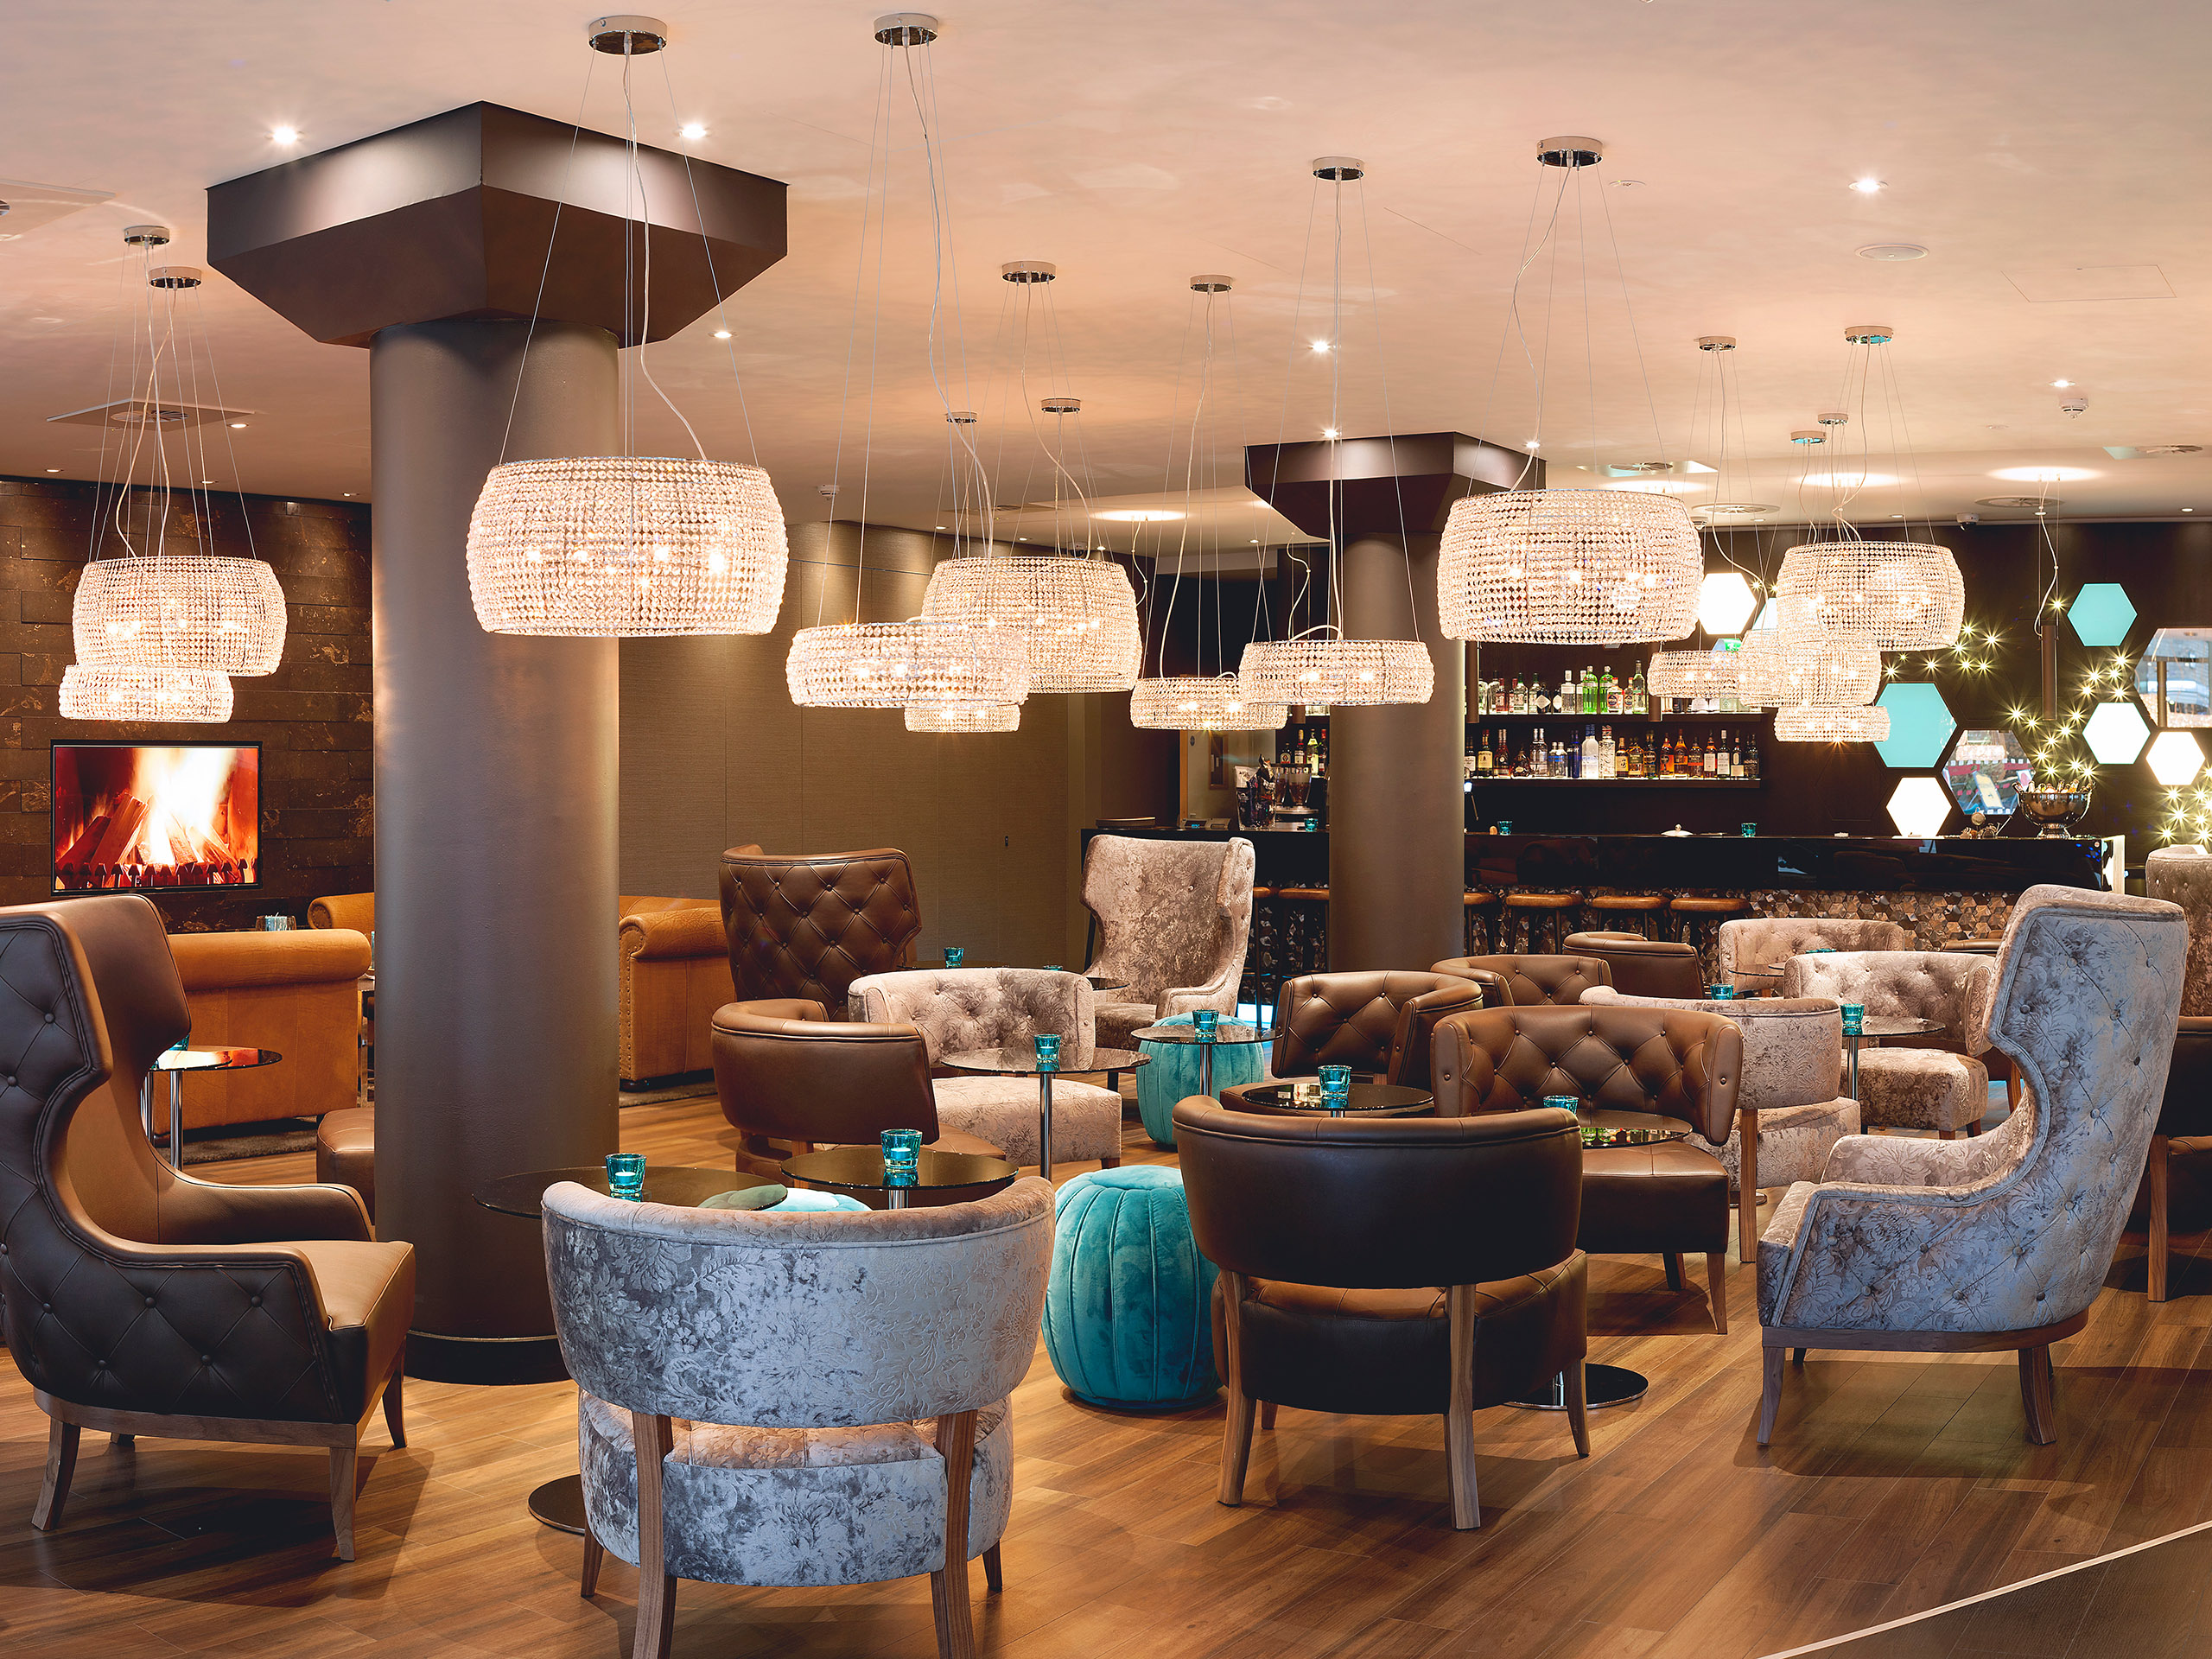 Hotel Motel One London-Tower Hill